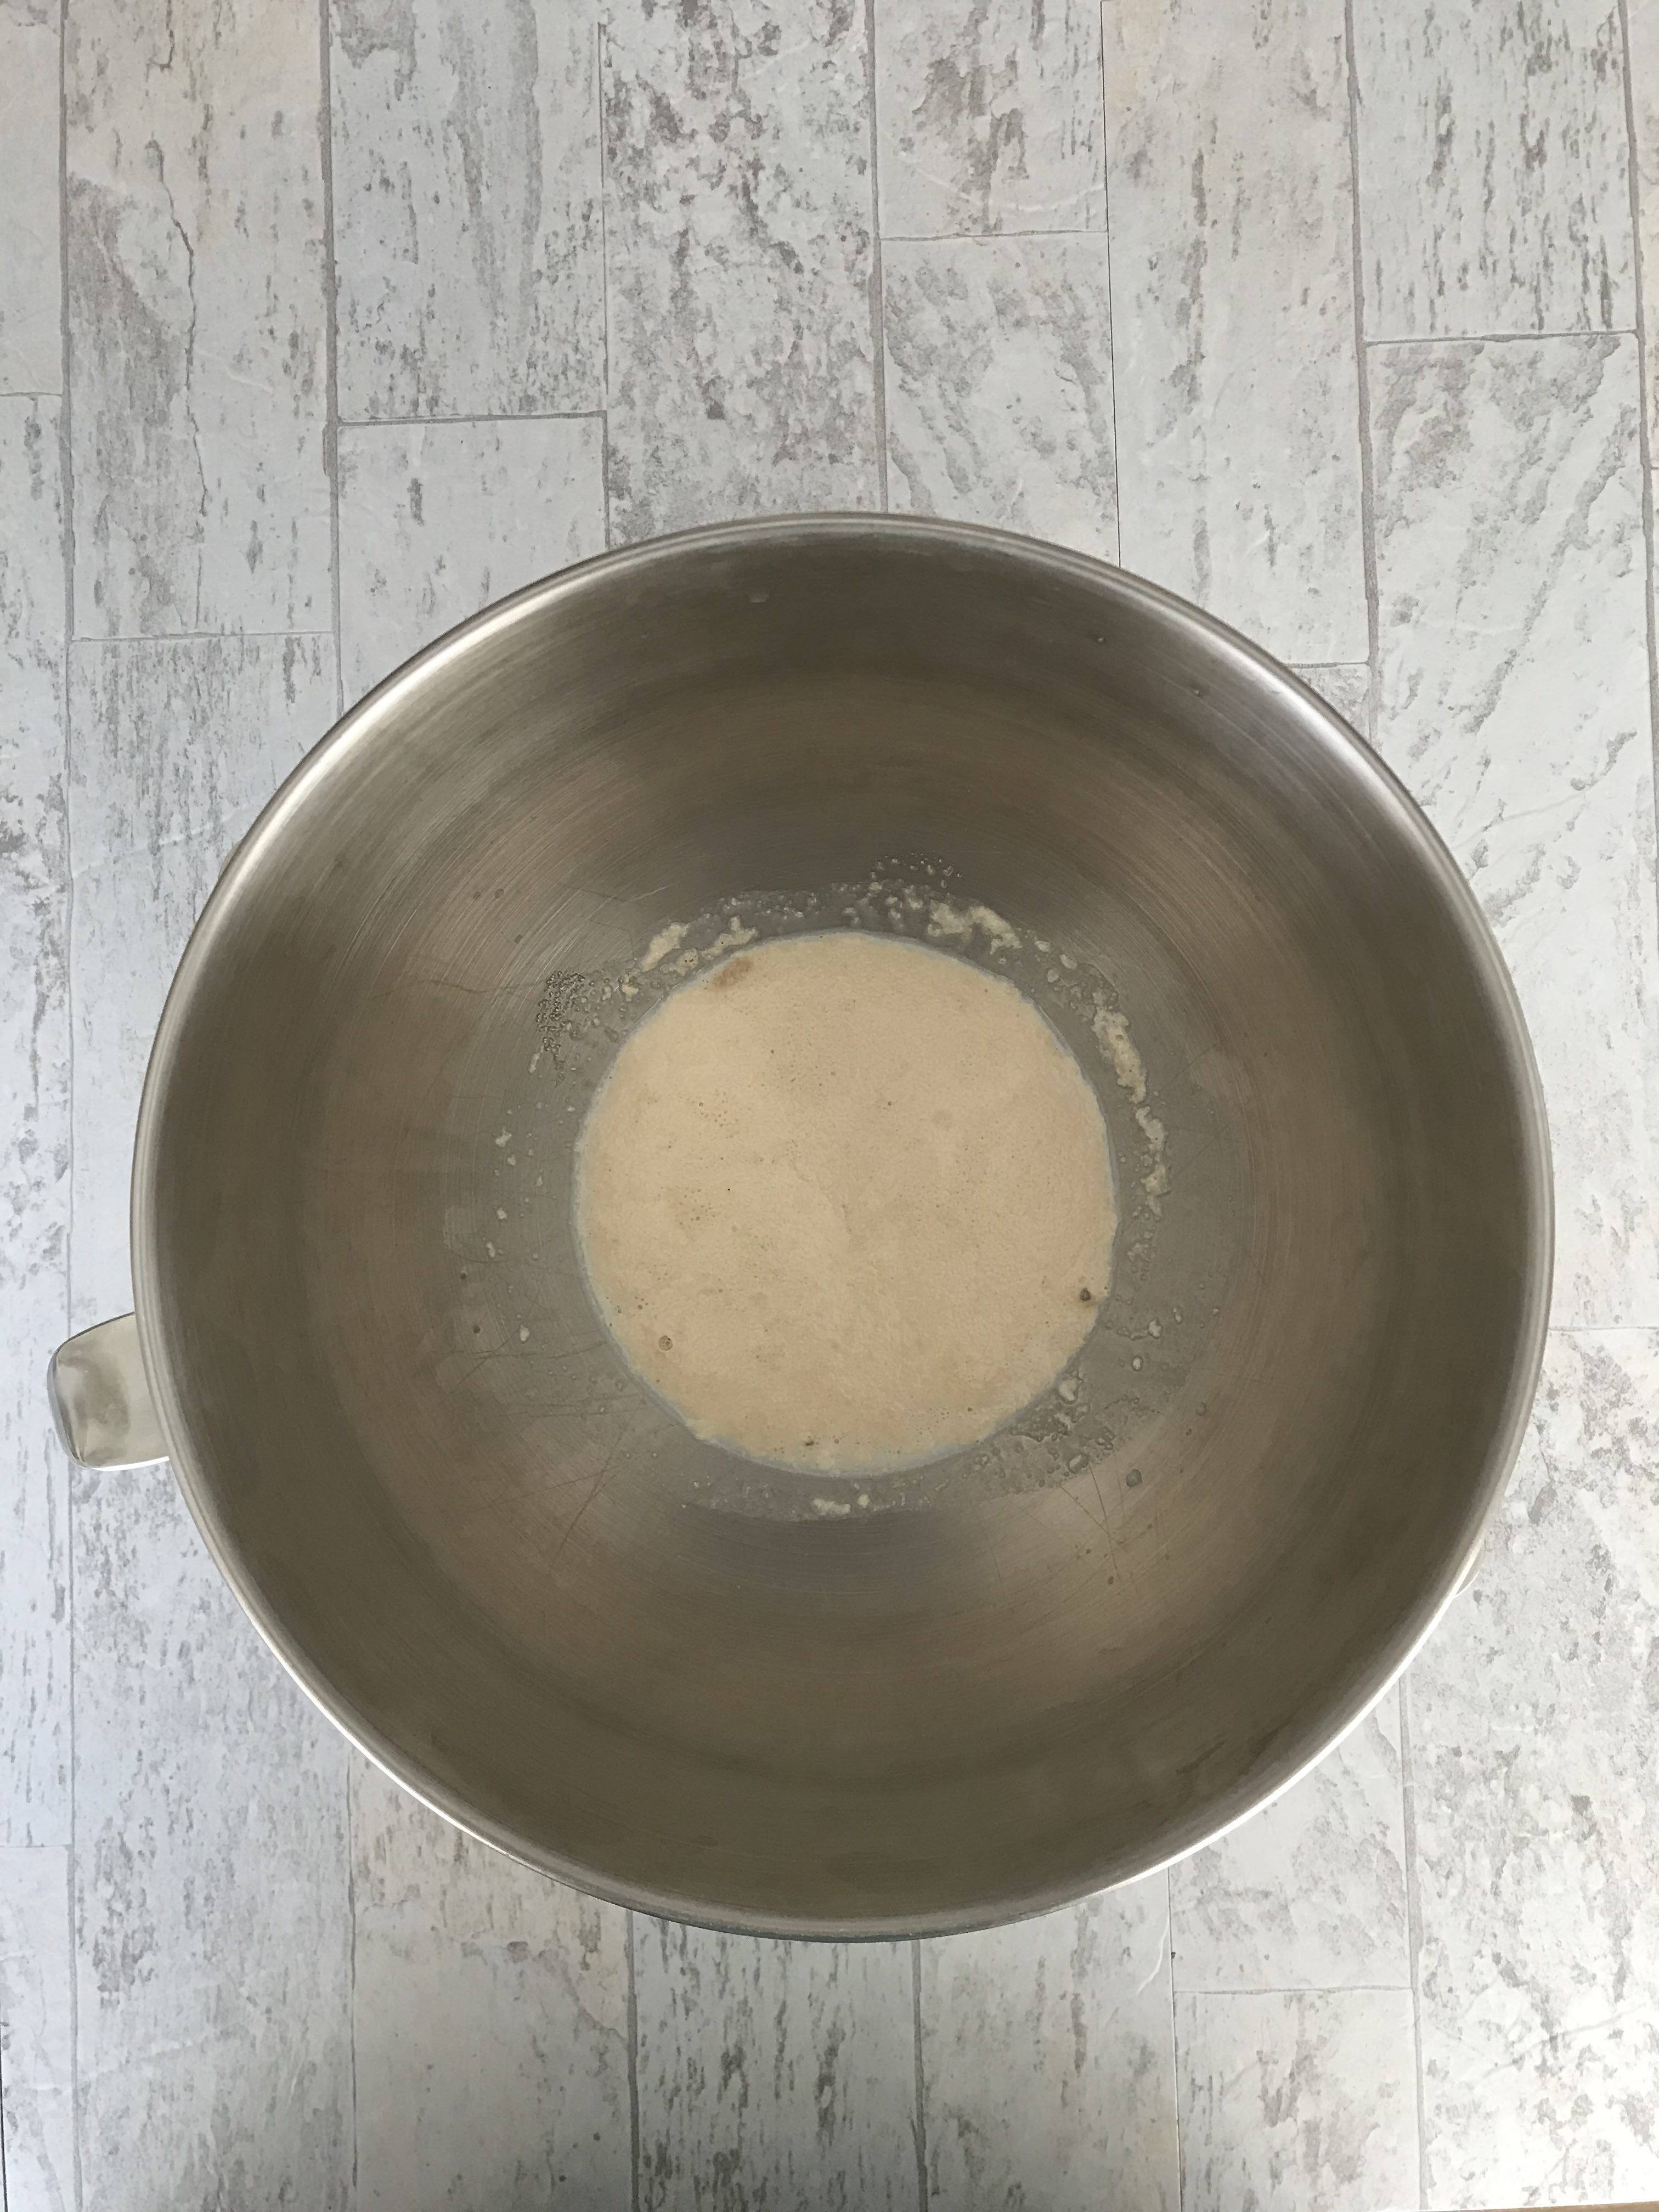 bloomed yeast, milk, and sugar in a bowl